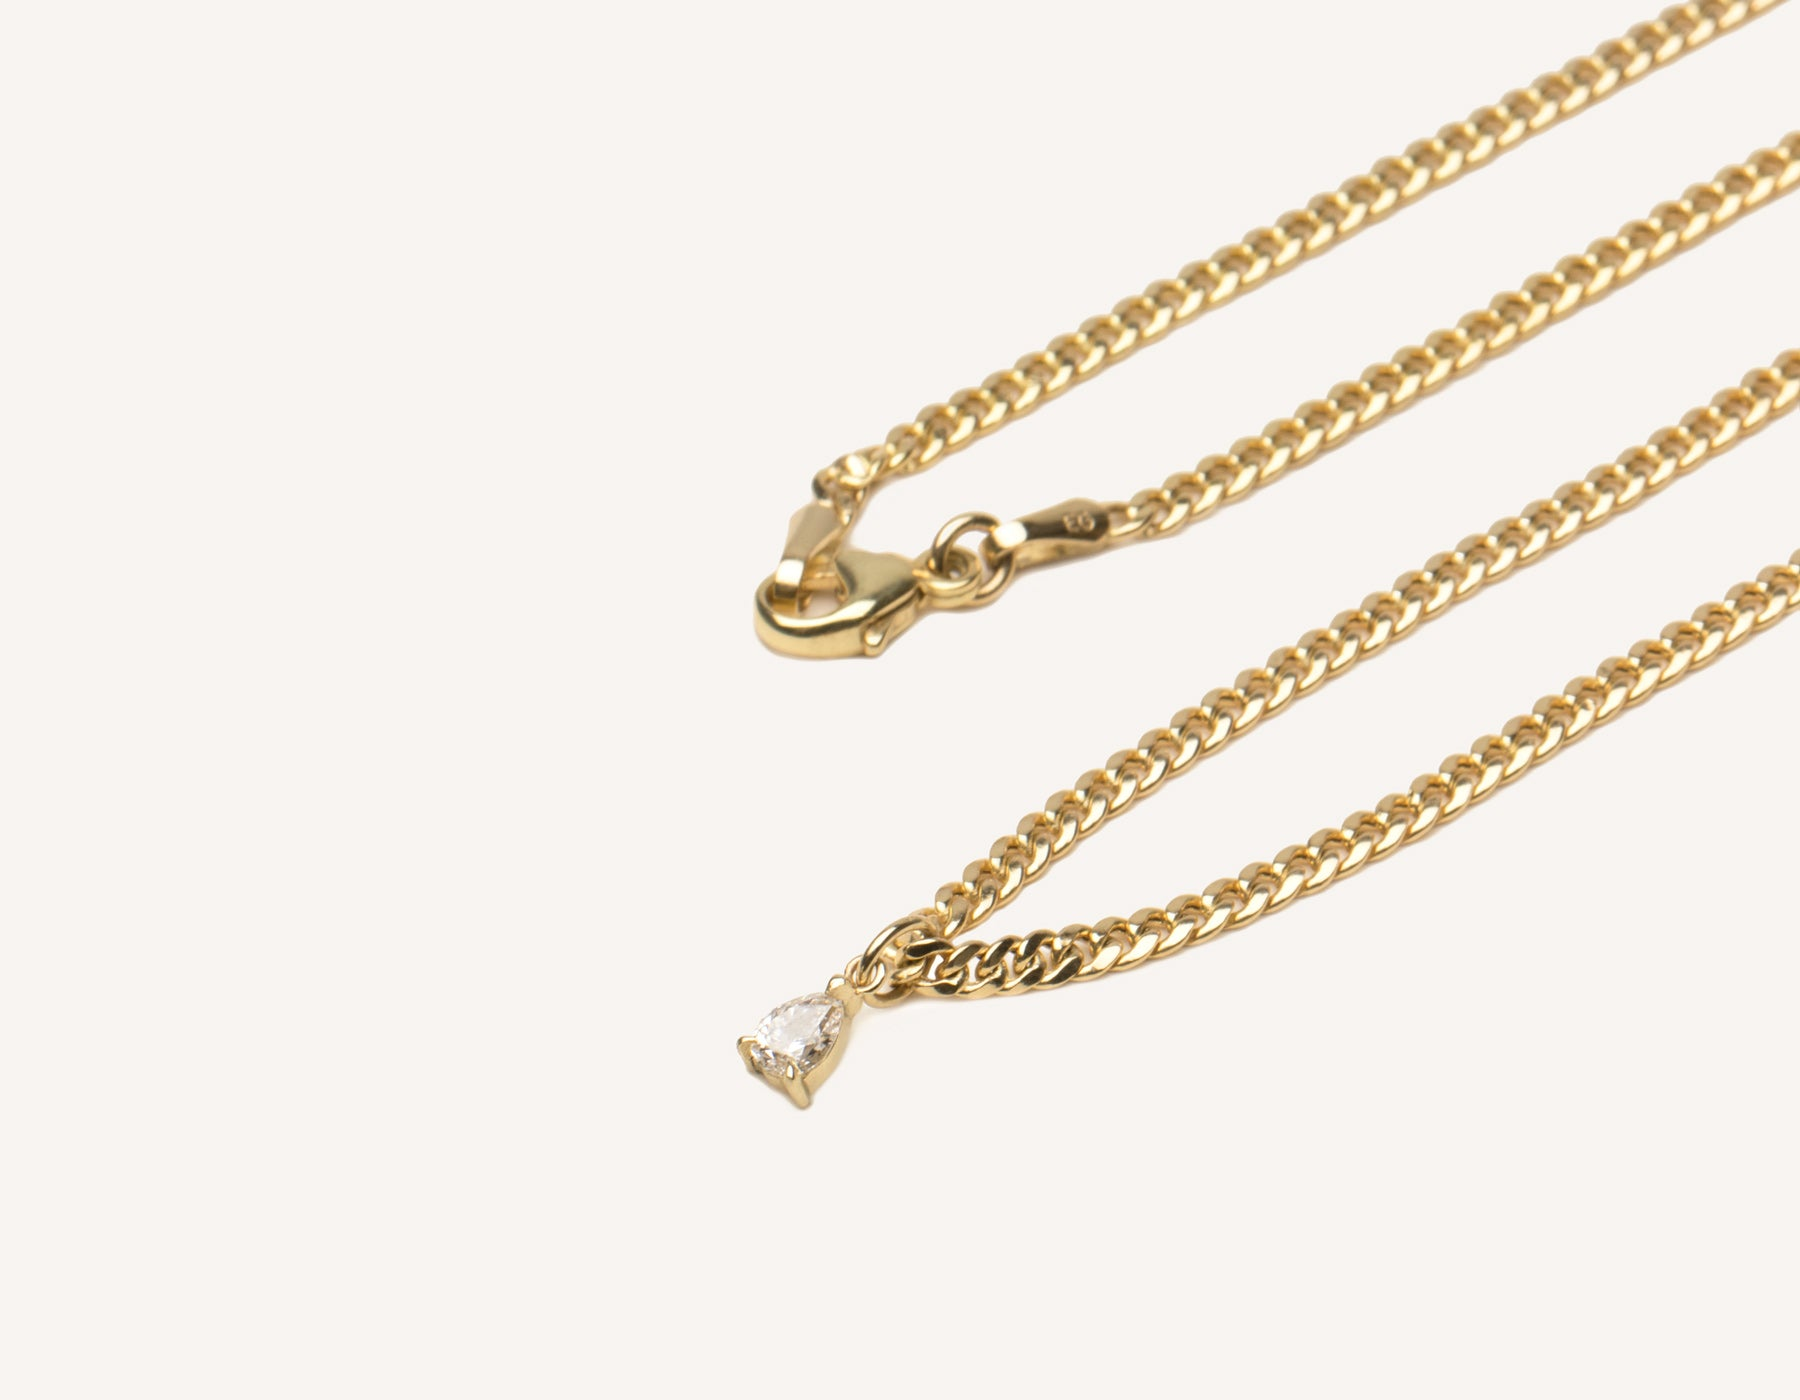 Simple Classic 14K Solid Gold Pear Diamond Pendant on thick Cuban Link chain with lobster ring clasp vrai & oro, 14K Yellow Gold